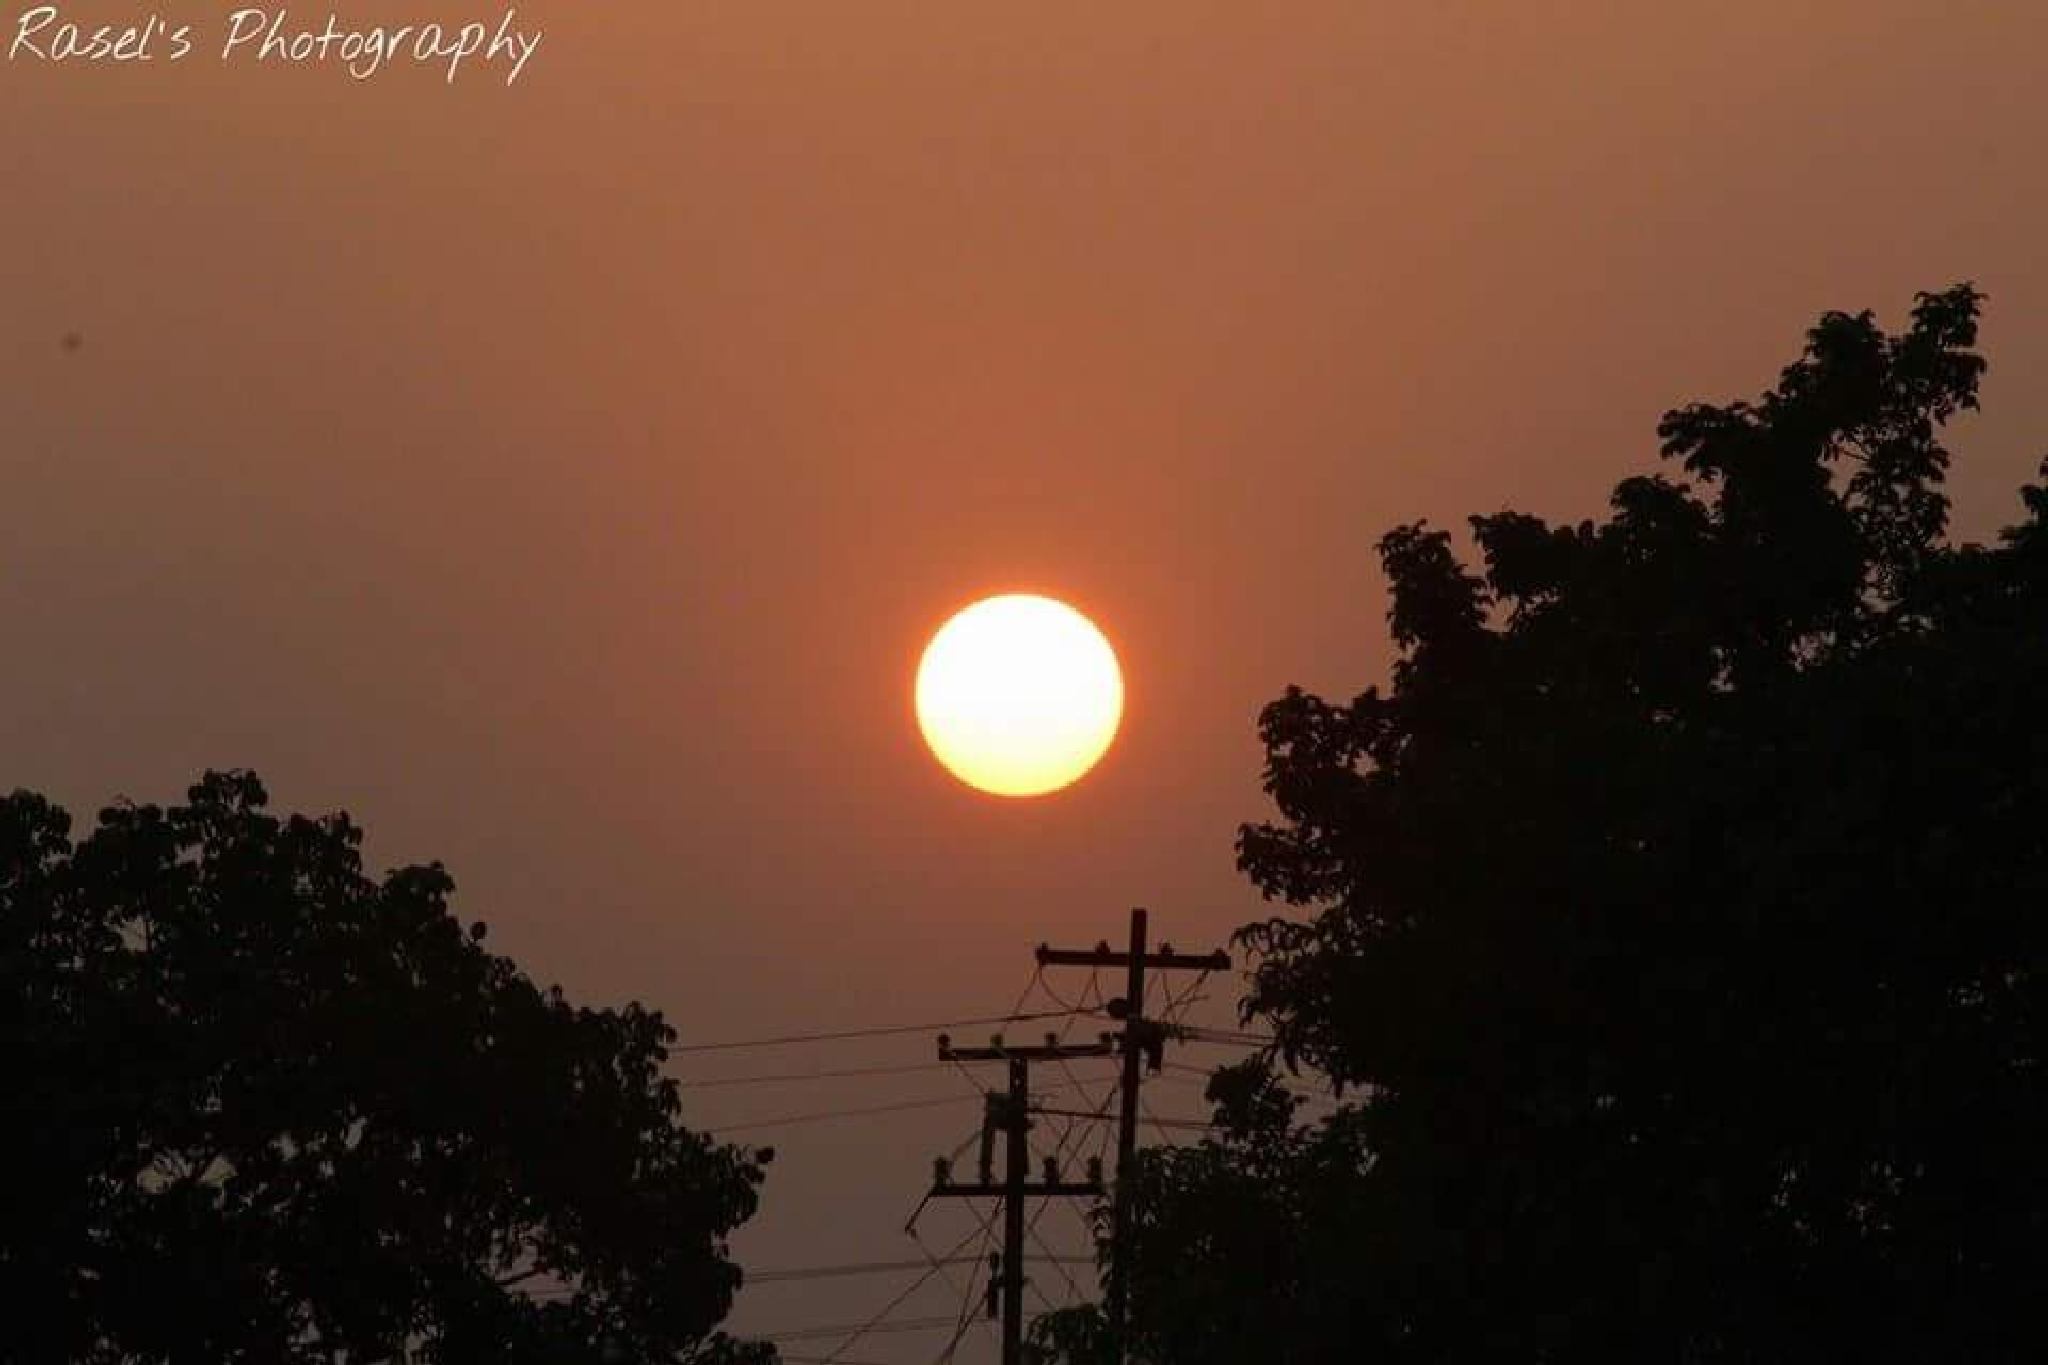 Untitled by Rasel Biswas